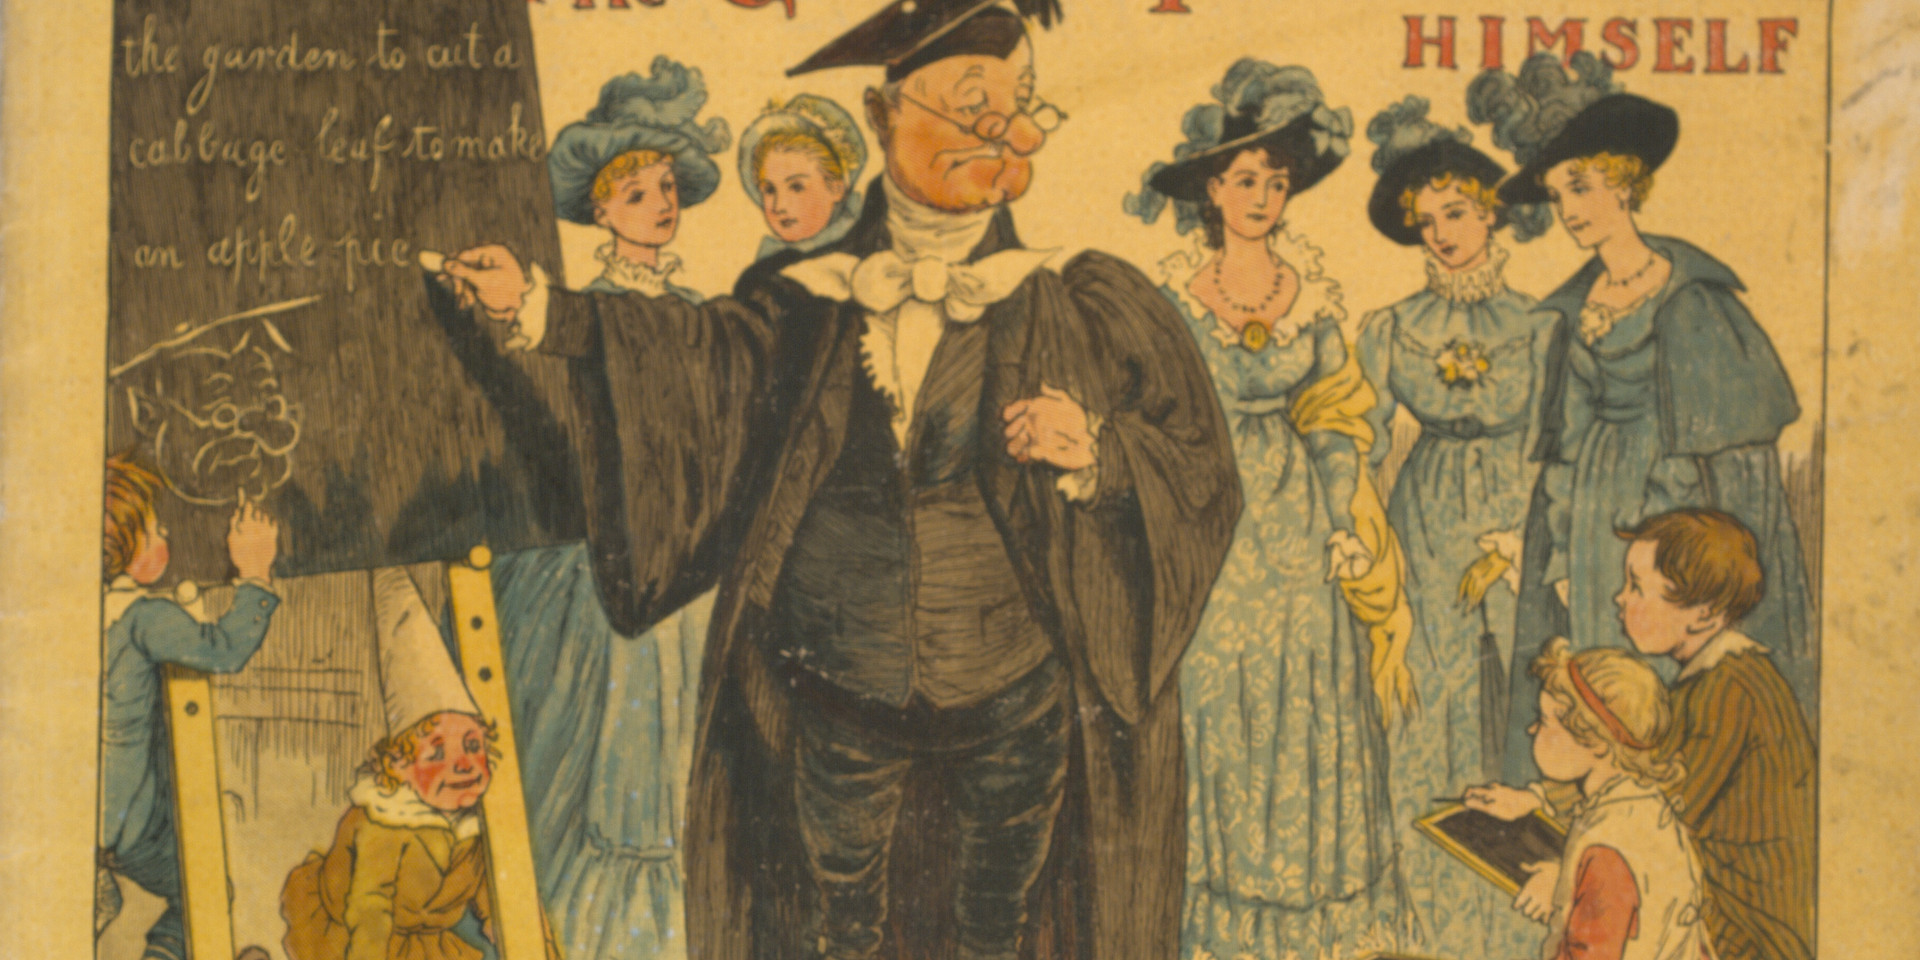 Caldecott, Randolph. The Great Panjandrum Himself. Frederick Warne & Co., 1855. Ryerson University Library and Archives.